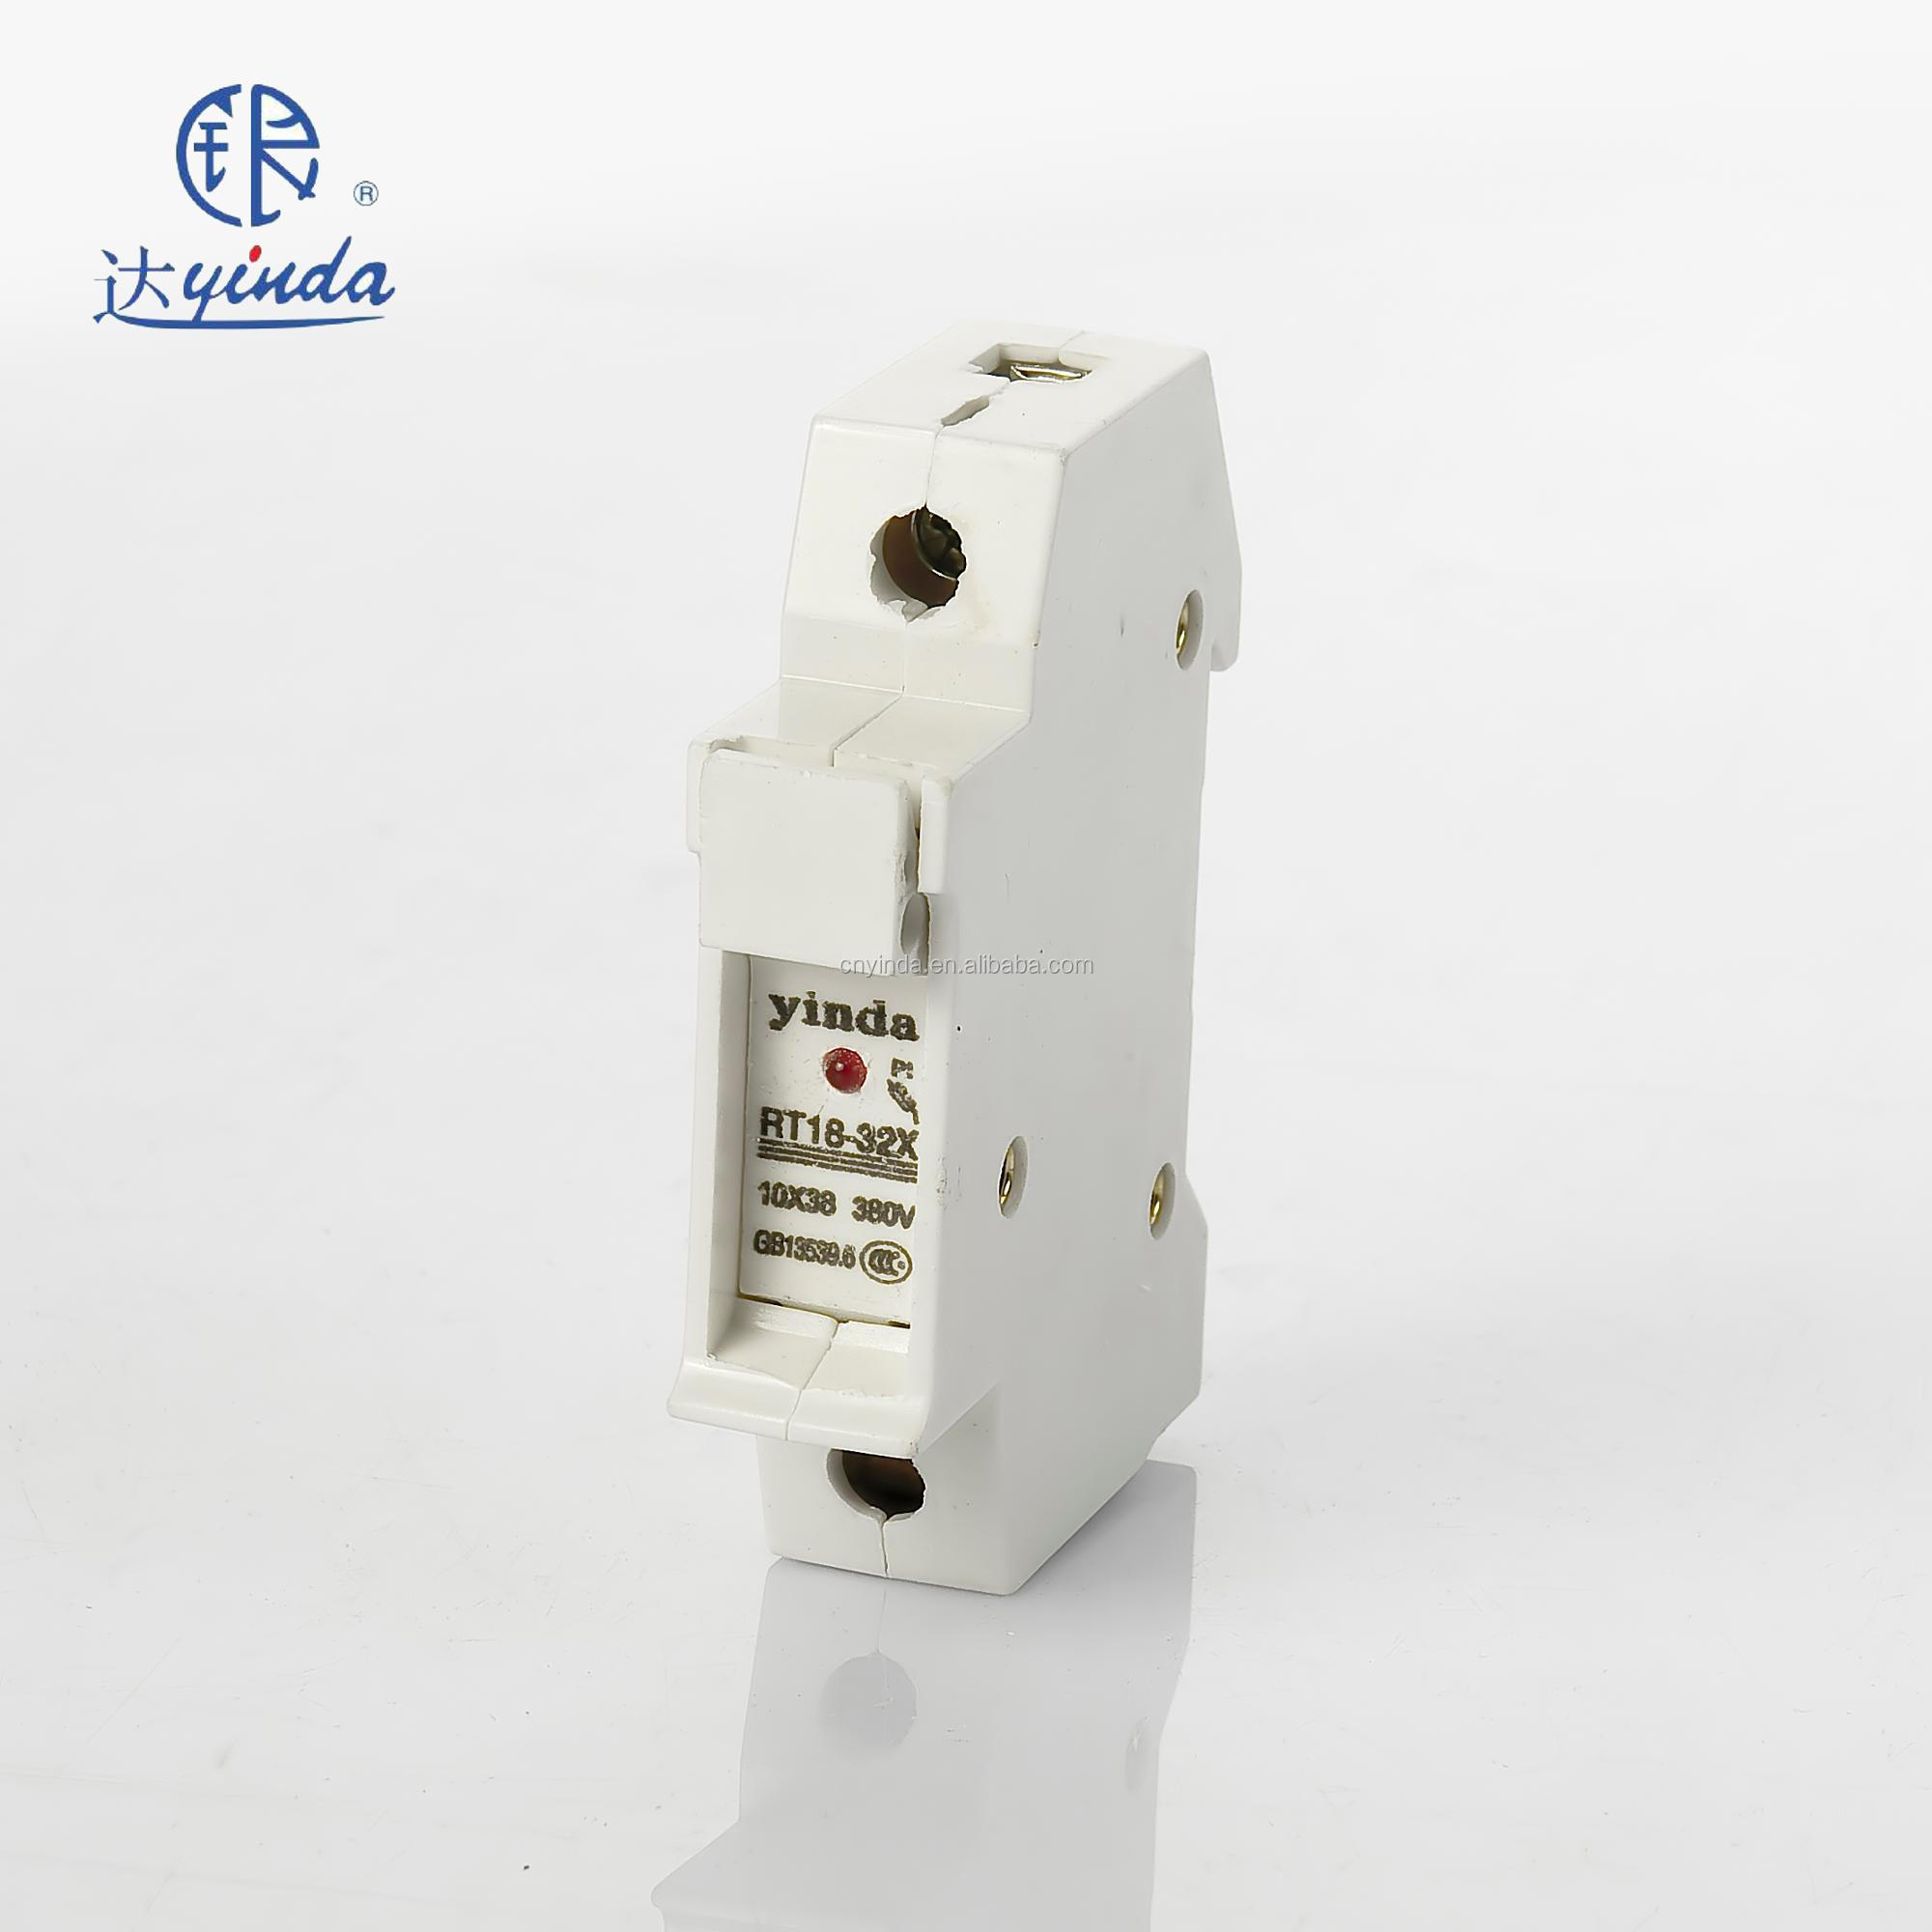 Cylindrical Ul Fuse Holder/fuse Disconnectors(ul/ce) - Buy Cylindrical Fuse  Holder,Ul Fuse Holder,Hrc Product on Alibaba.com